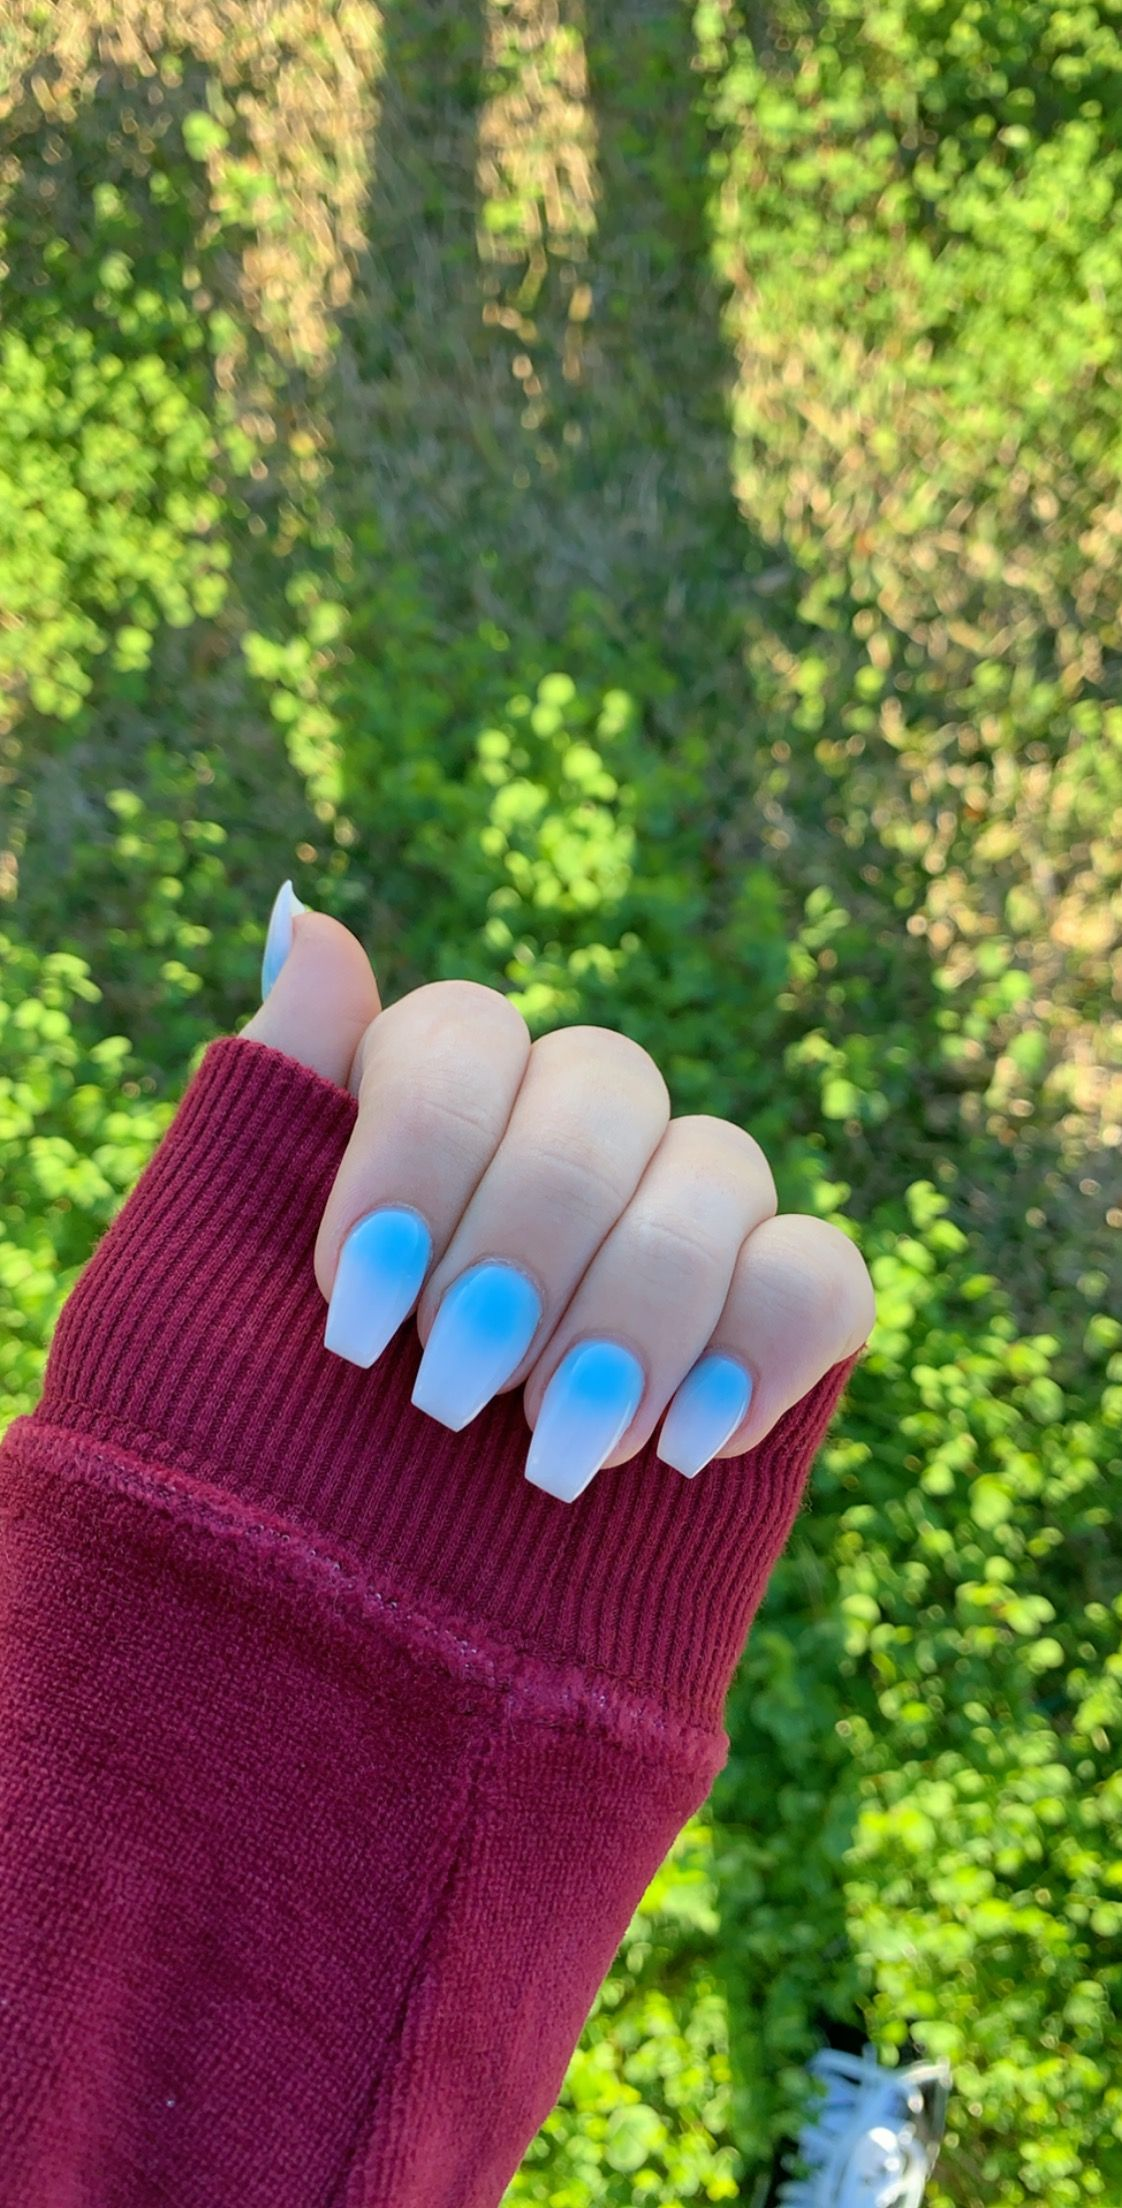 Blue to white fade, acrylic nails, coffin shape, fade nails